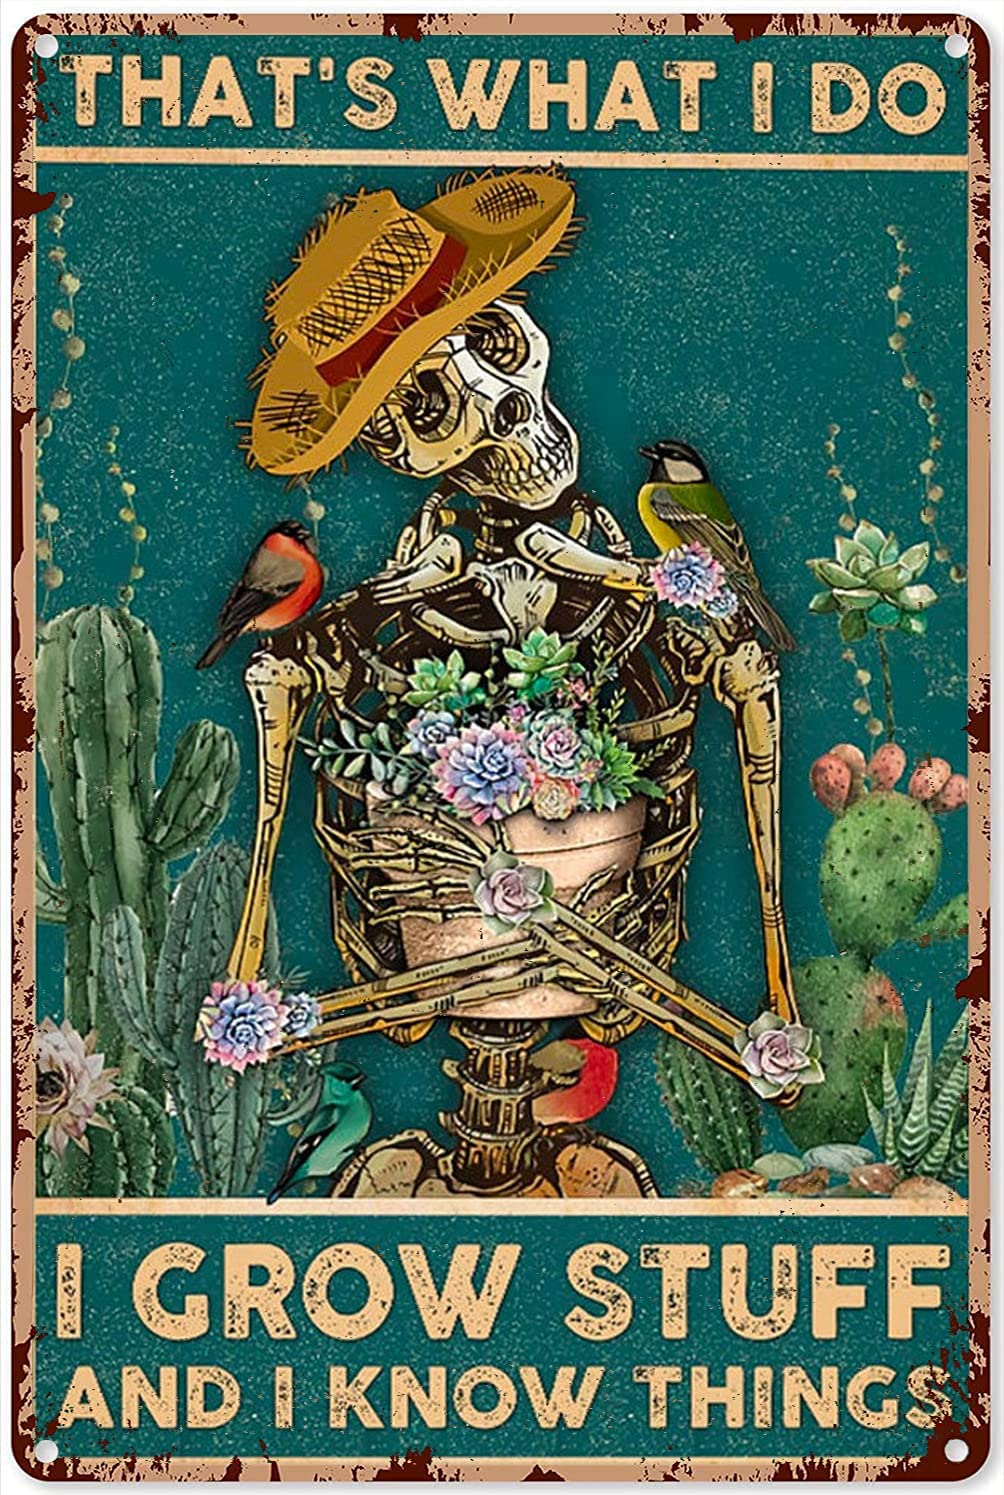 Retro Tin Sign Gardening That's What I Do I Grow Stuff and I Know Things Cactus Garden Tin Sign Decoration Vintage Chic Metal Poster Wall Decor